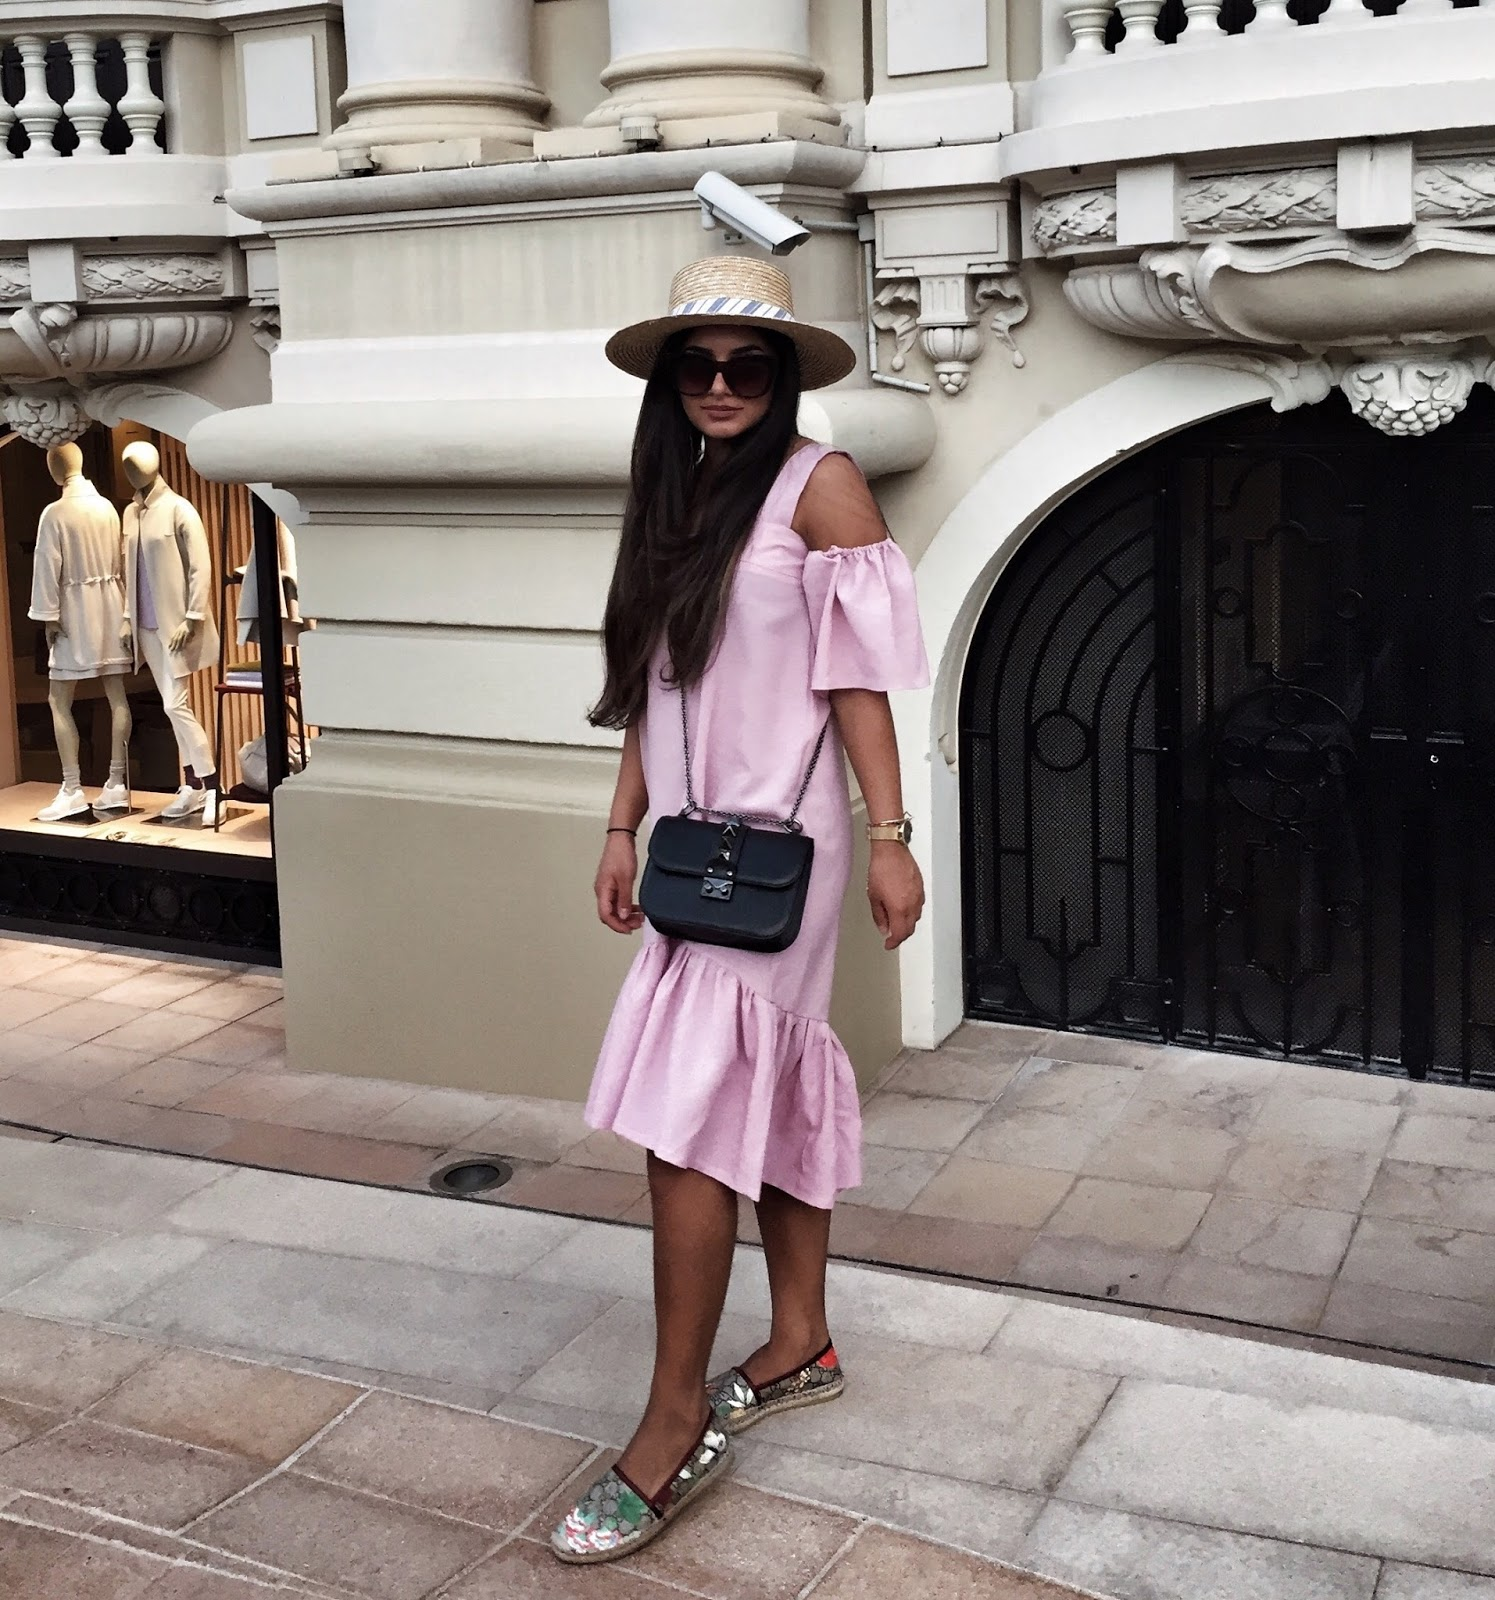 I was wearing the cutest dress from OWNTHELOOKS together with my Gucci  espadrilles. Hope you liked my outfit! ,Bisous